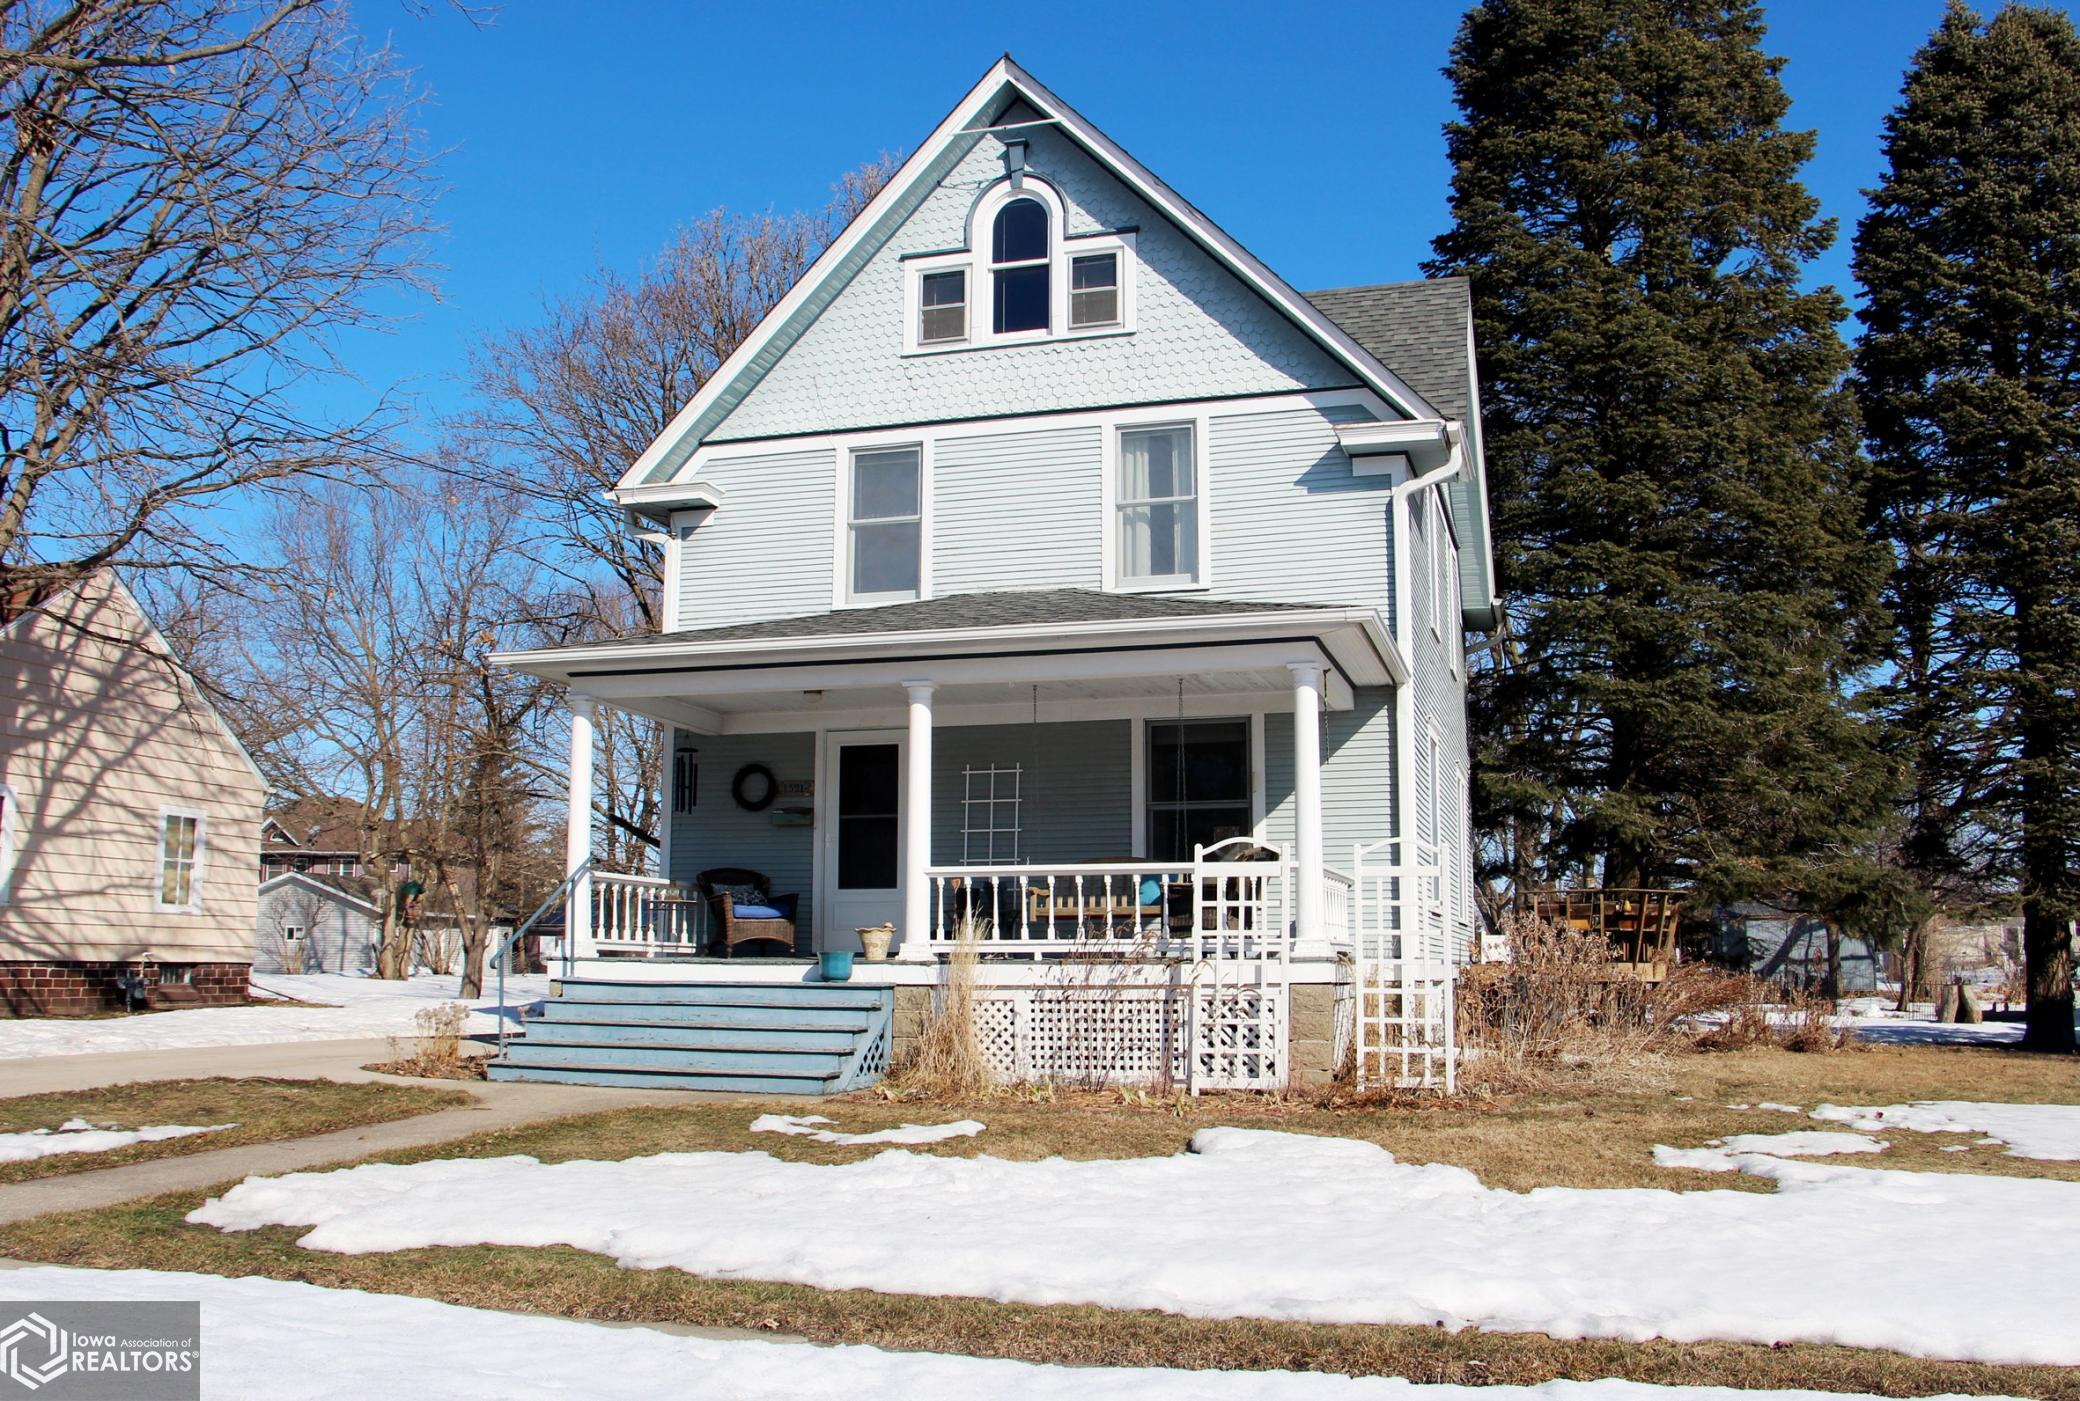 1521 7th, Grinnell, Iowa 50112-1508, 4 Bedrooms Bedrooms, ,1 BathroomBathrooms,Single Family,For Sale,7th,5719548